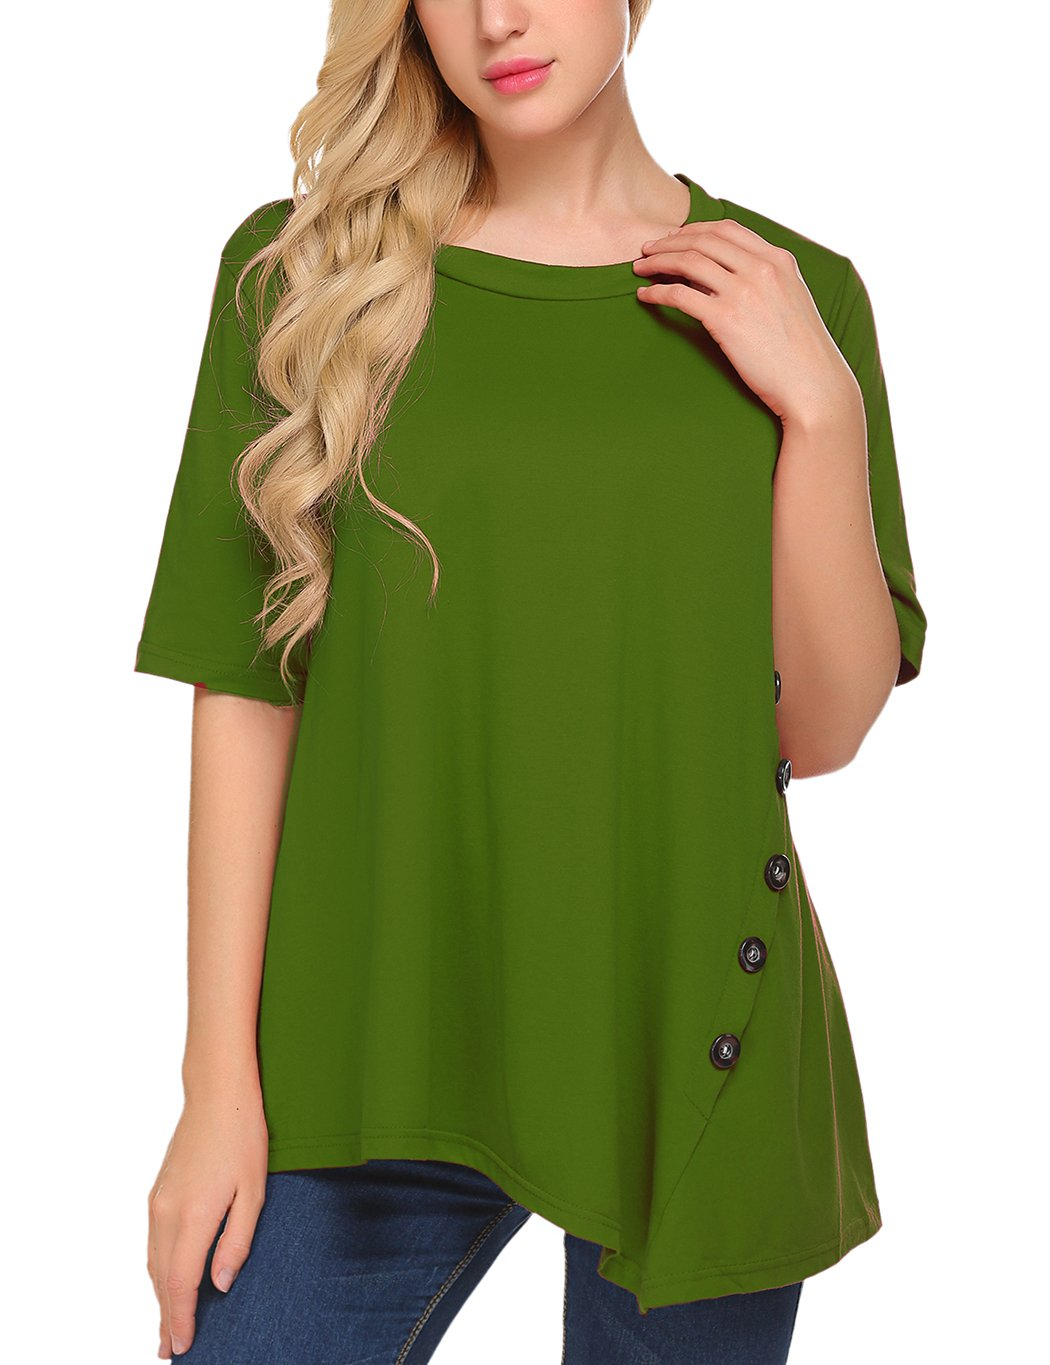 Sweetnight Women's Casual O-Neck Short Sleeve Solid Asymmetrical Pleated T-Shirt Blouse Top Plus Size (XL, Green)